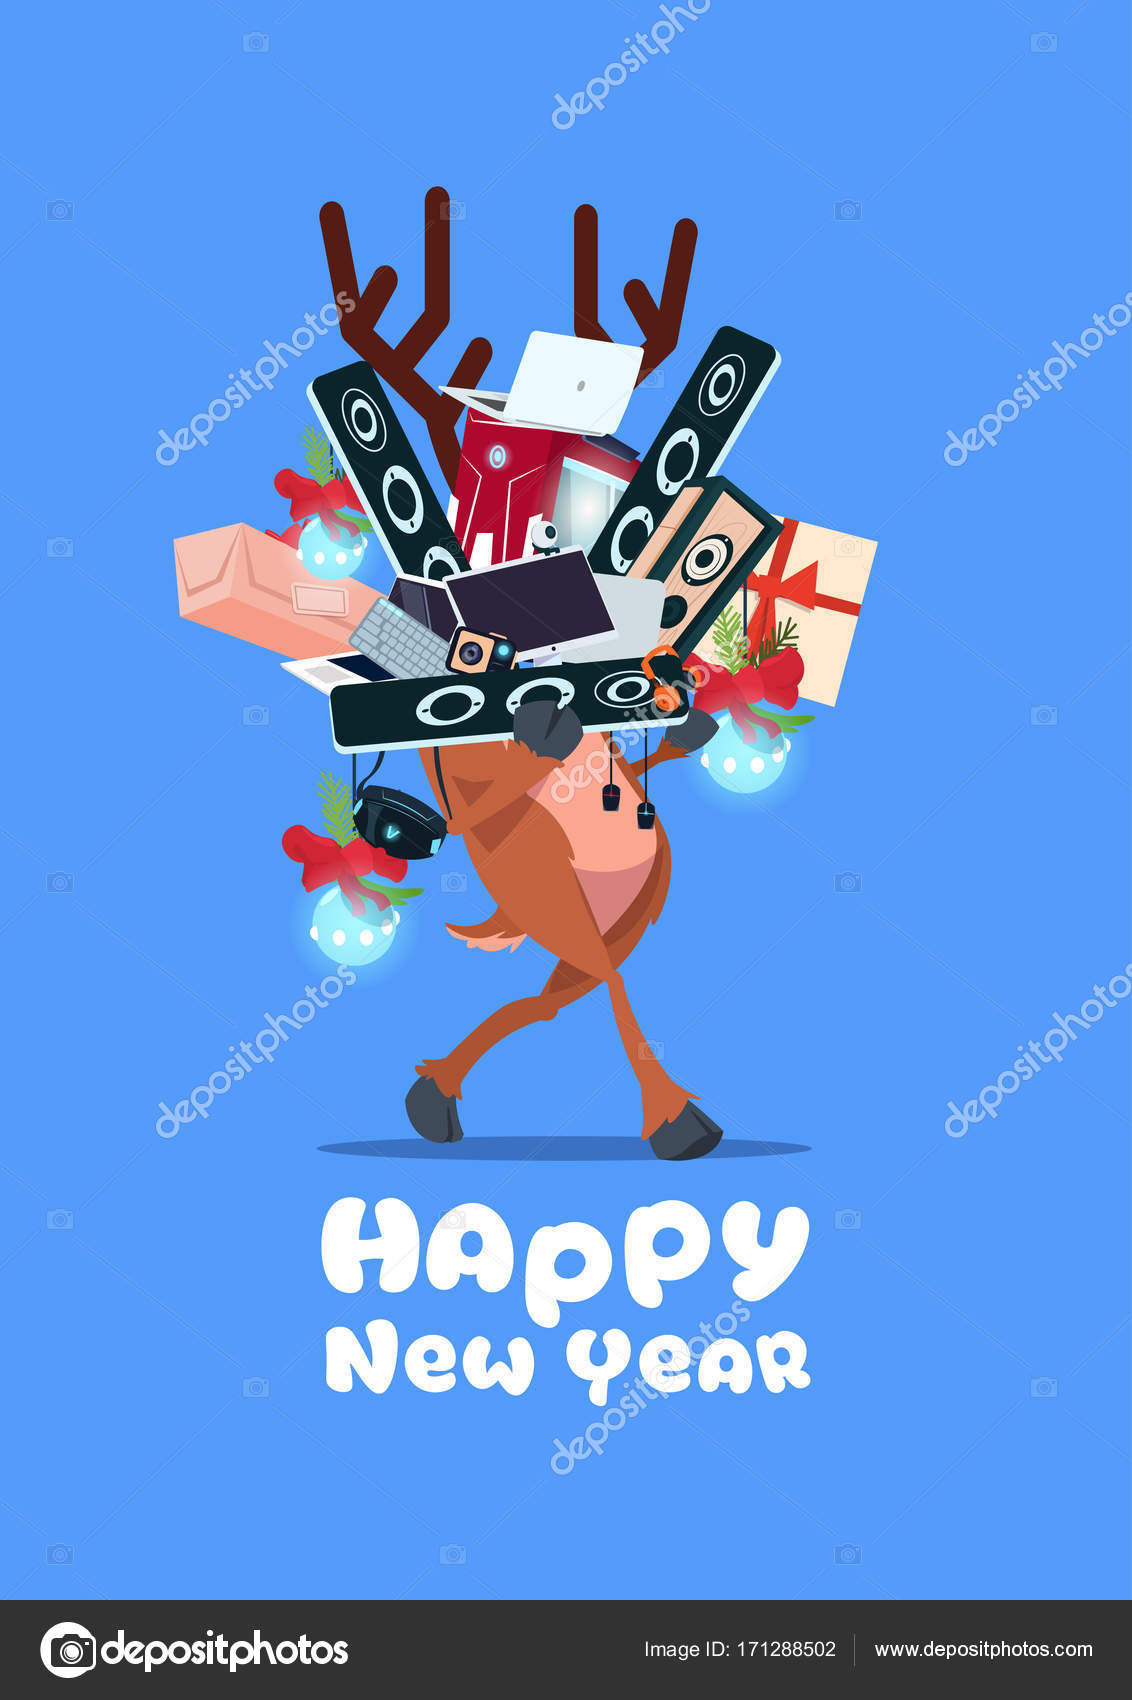 santa claus holding pile of modern electronics gadgets on happy new year banner background stock